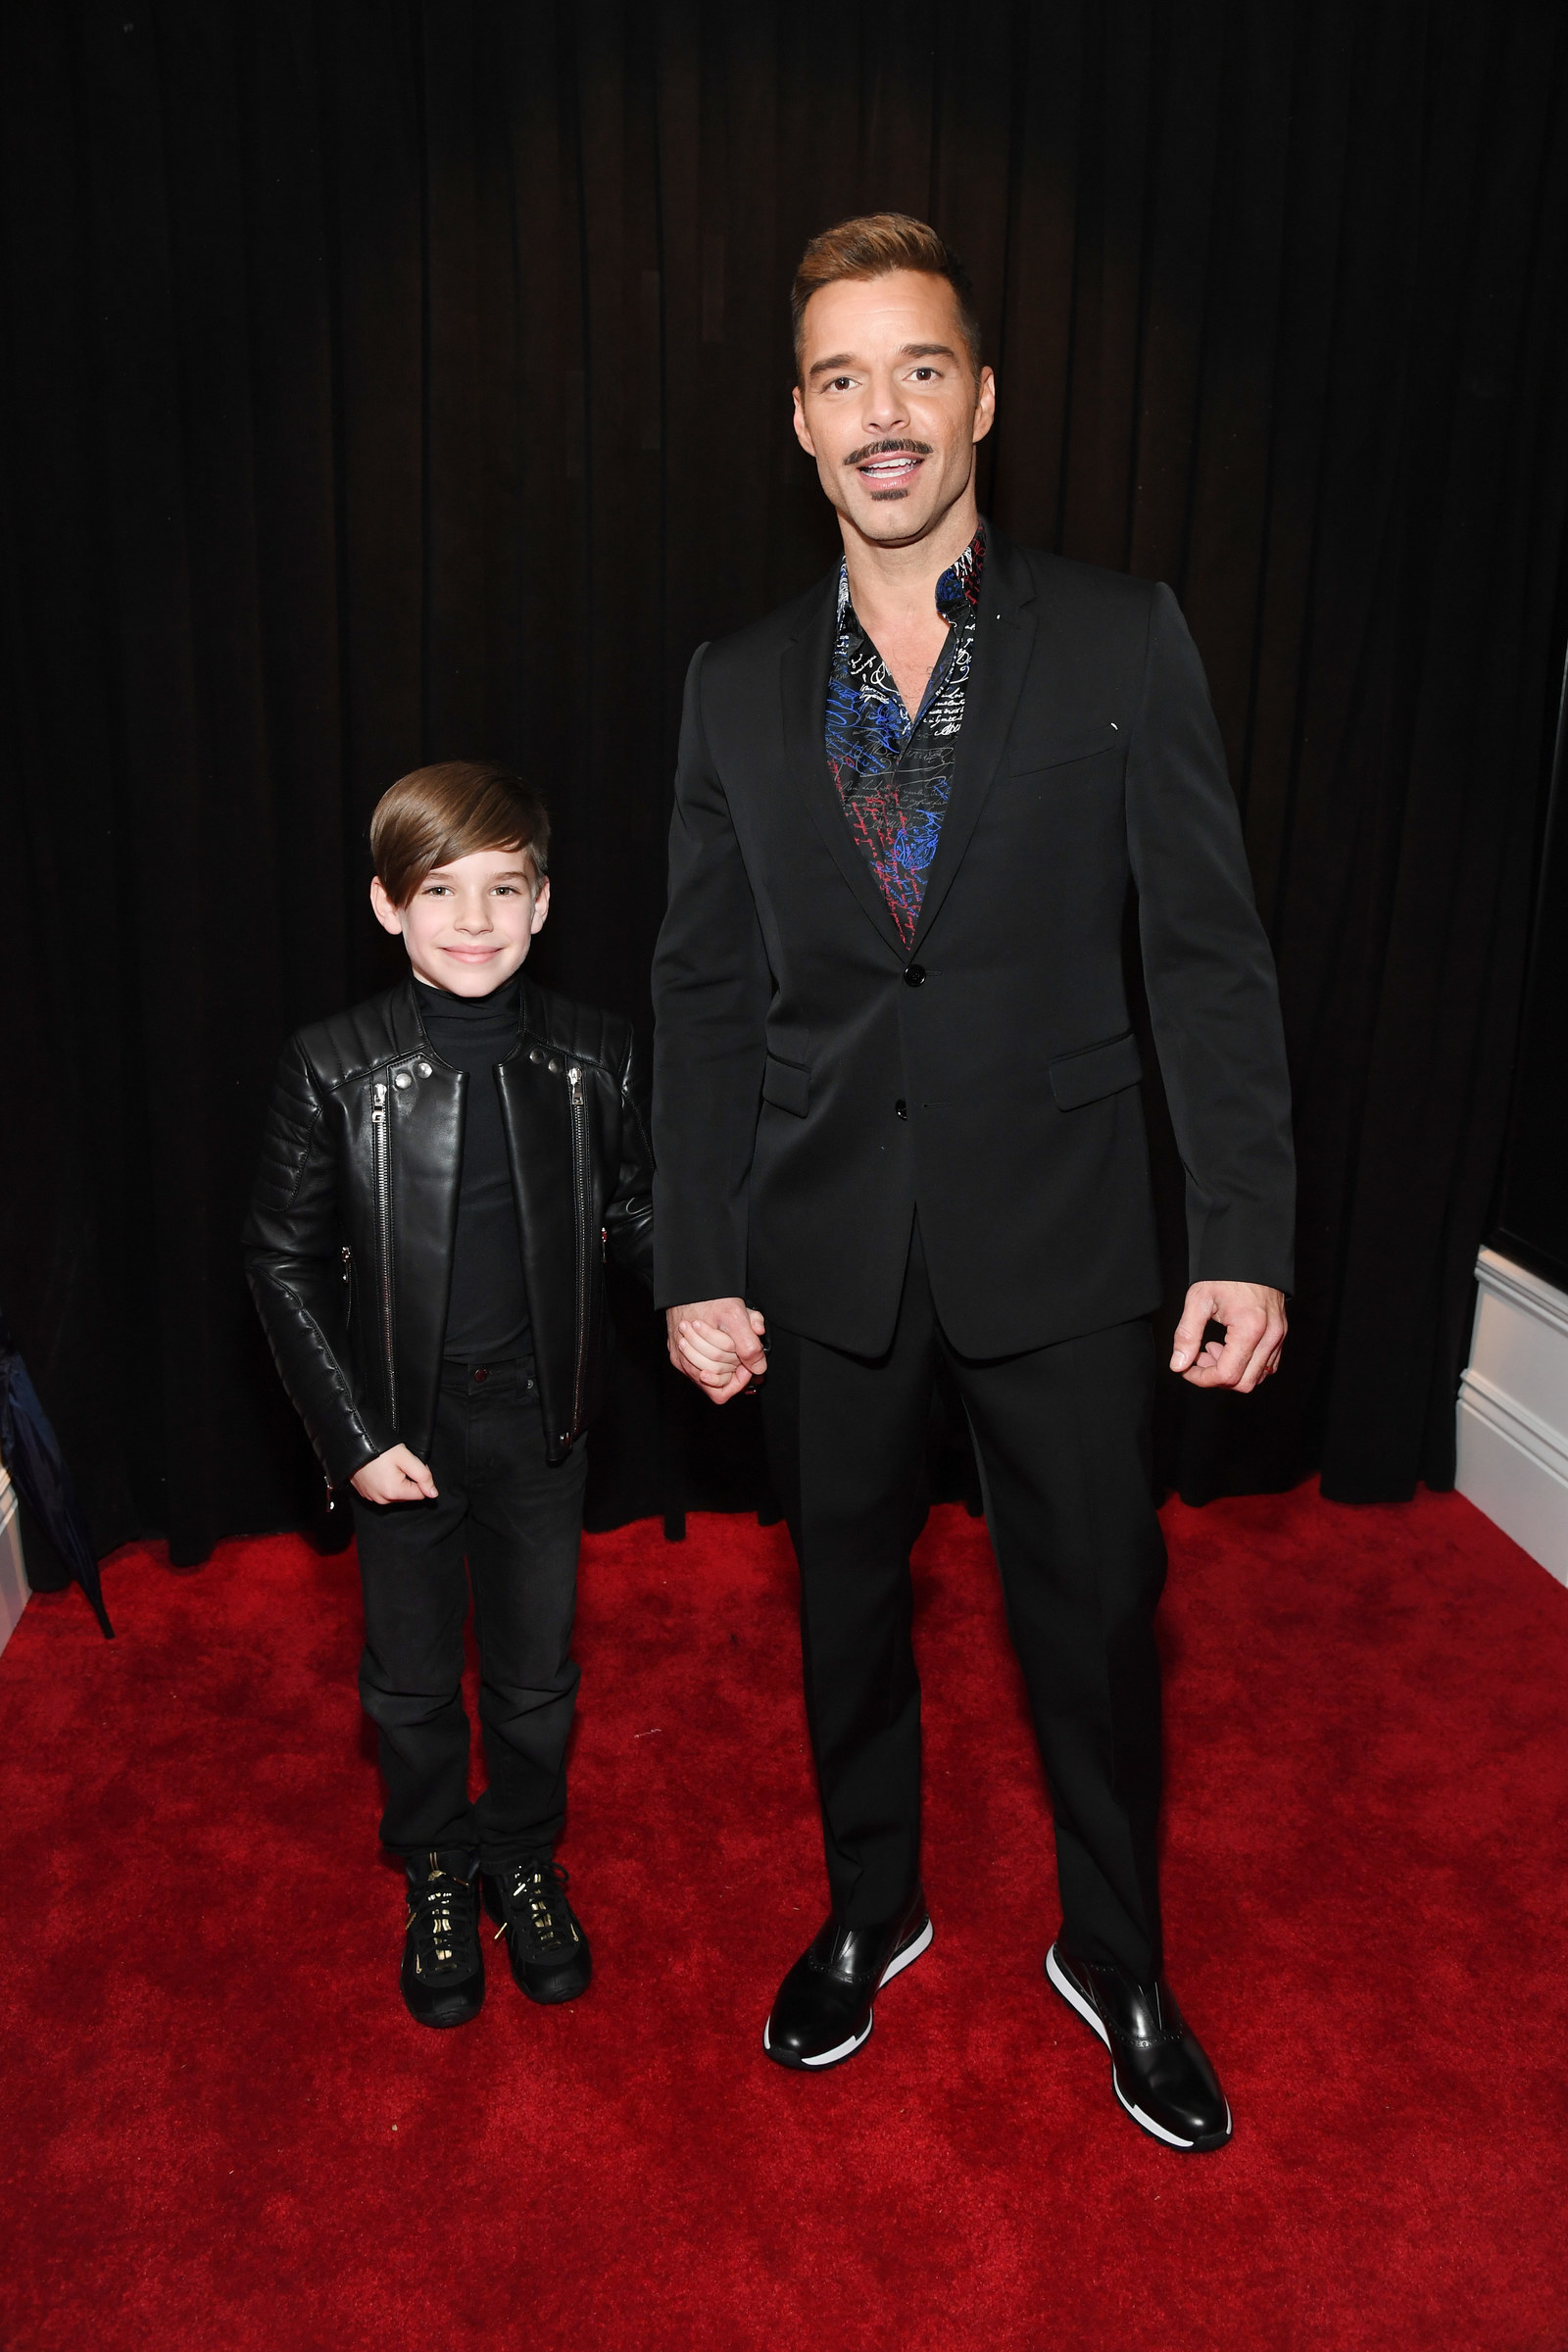 In case you need a pick-me-up, let me present to you: Ricky Martin and his 10-year-old son Matteo at the Grammys.